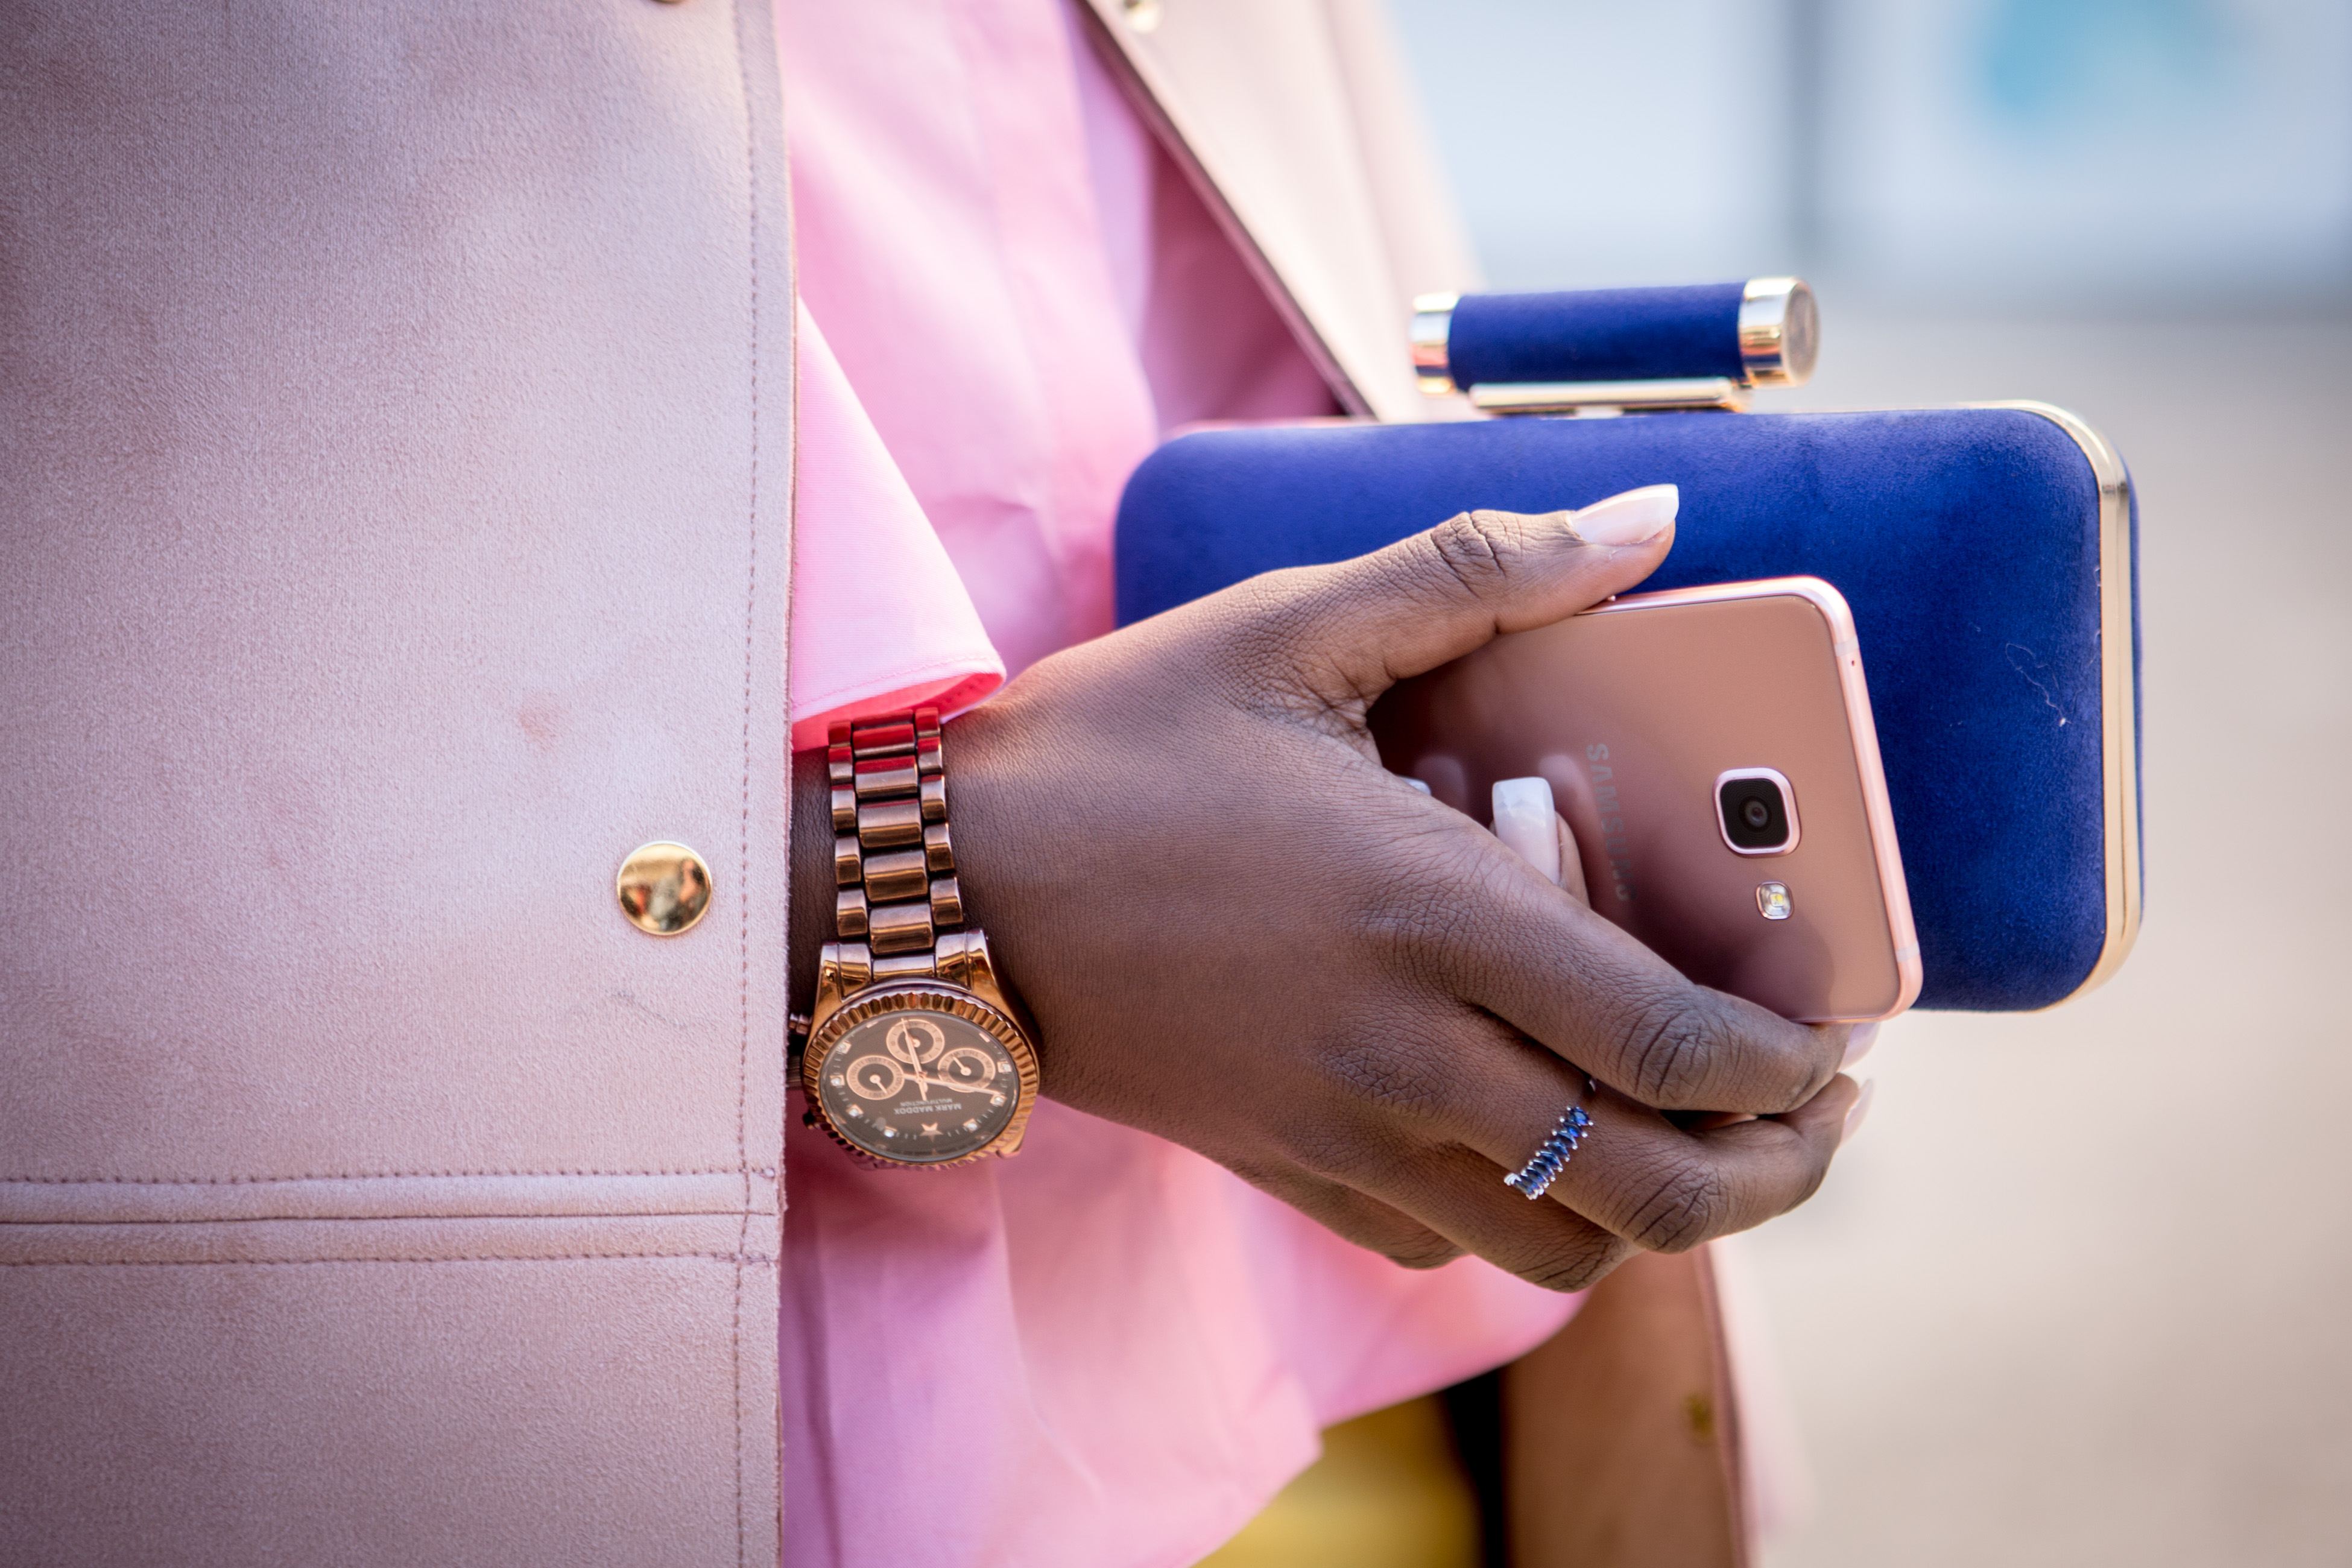 A close up of a woman wearing a pink jacket and a gold watch, carrying a rose gold smartphone and a blue purse.